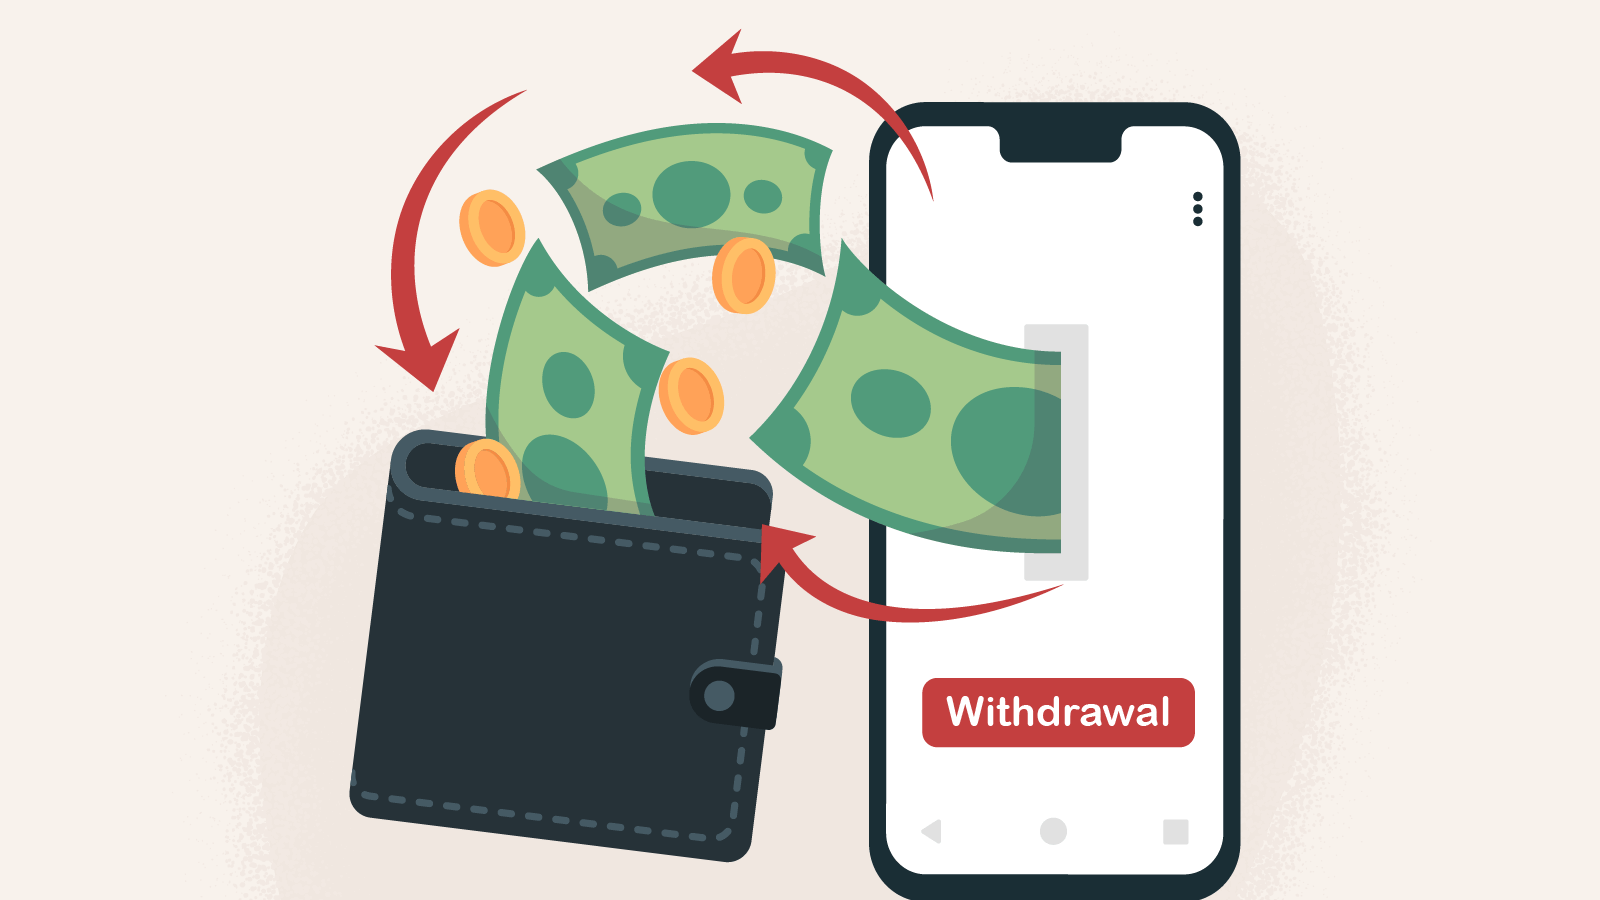 Withdrawal restrictions